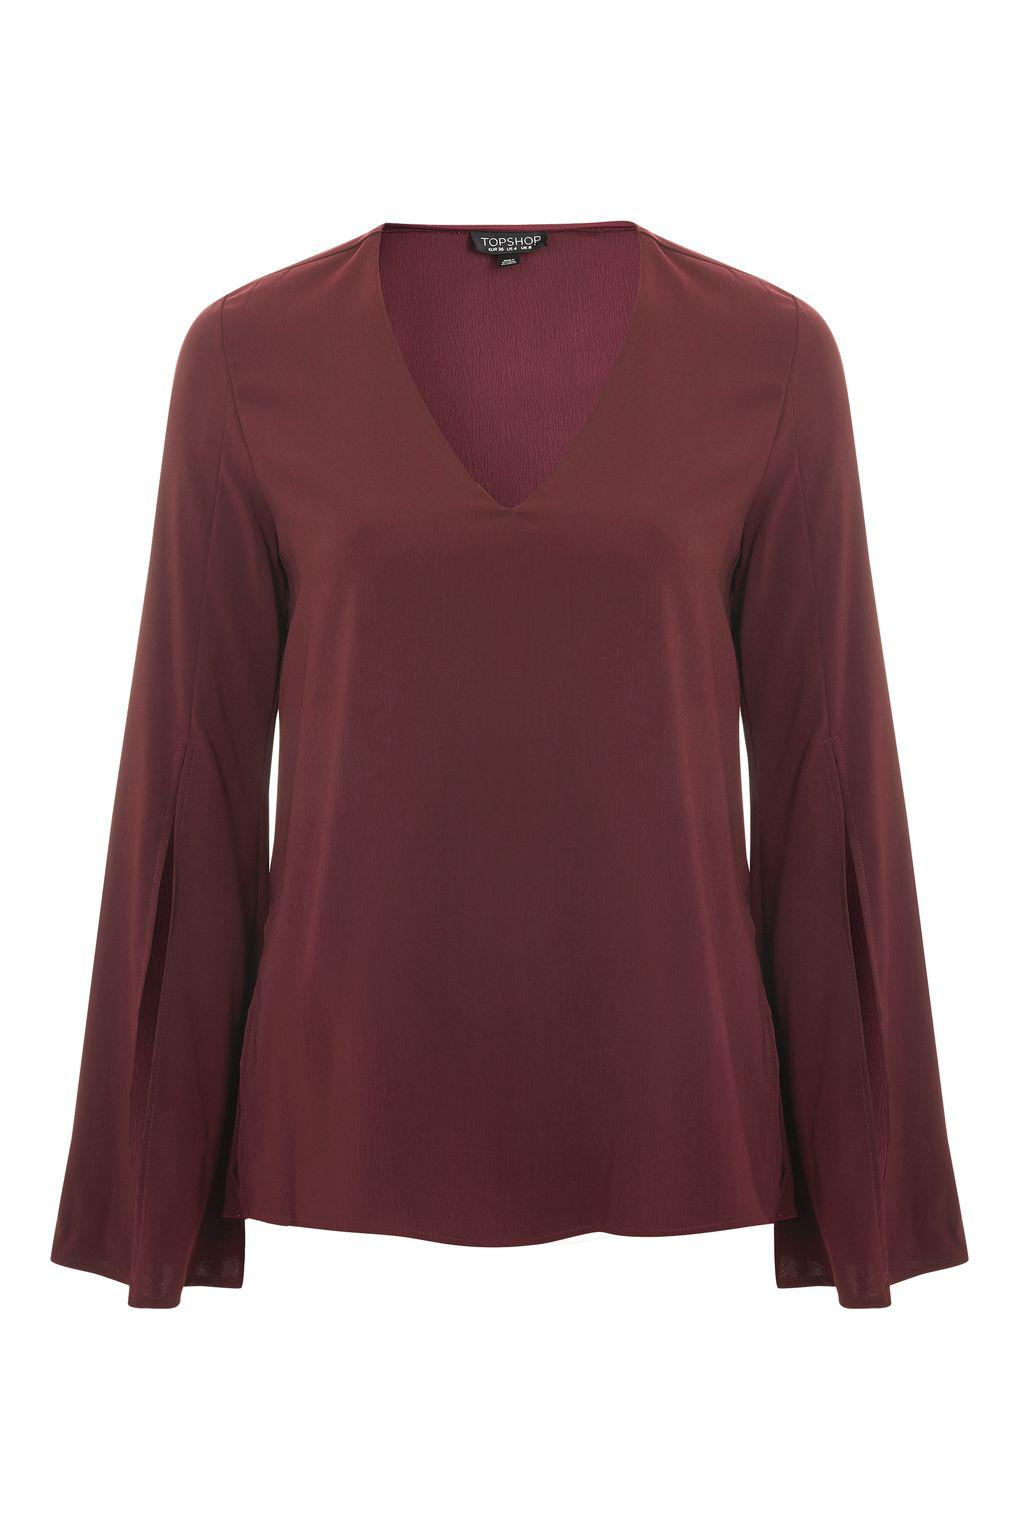 TOPSHOP Synthetic V-neck Tunic Blouse in Oxblood (Purple)